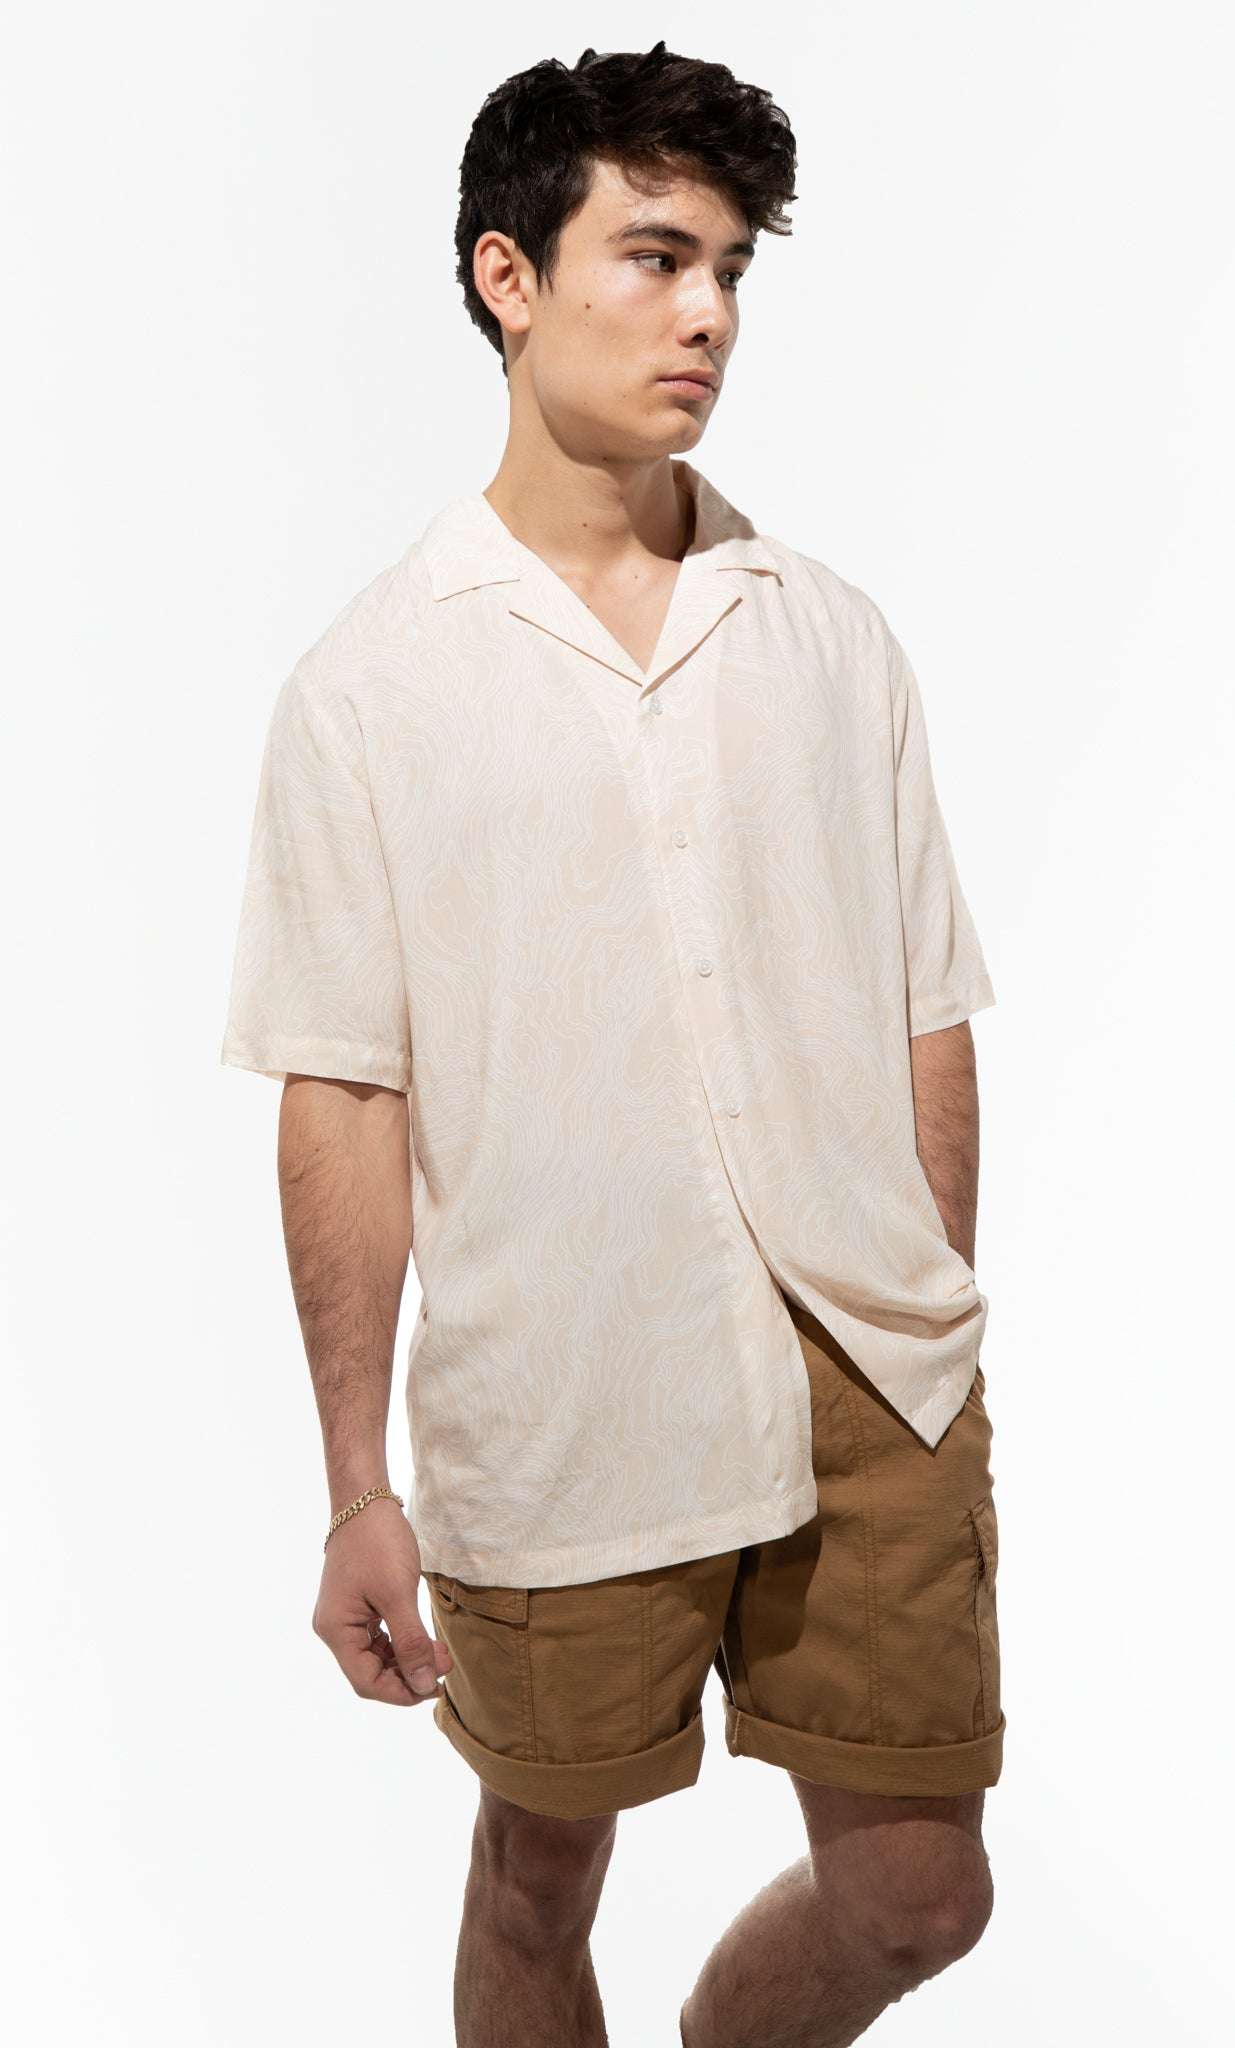 Sand Dune Button-Up Short Sleeve Shirt in Warm Sand